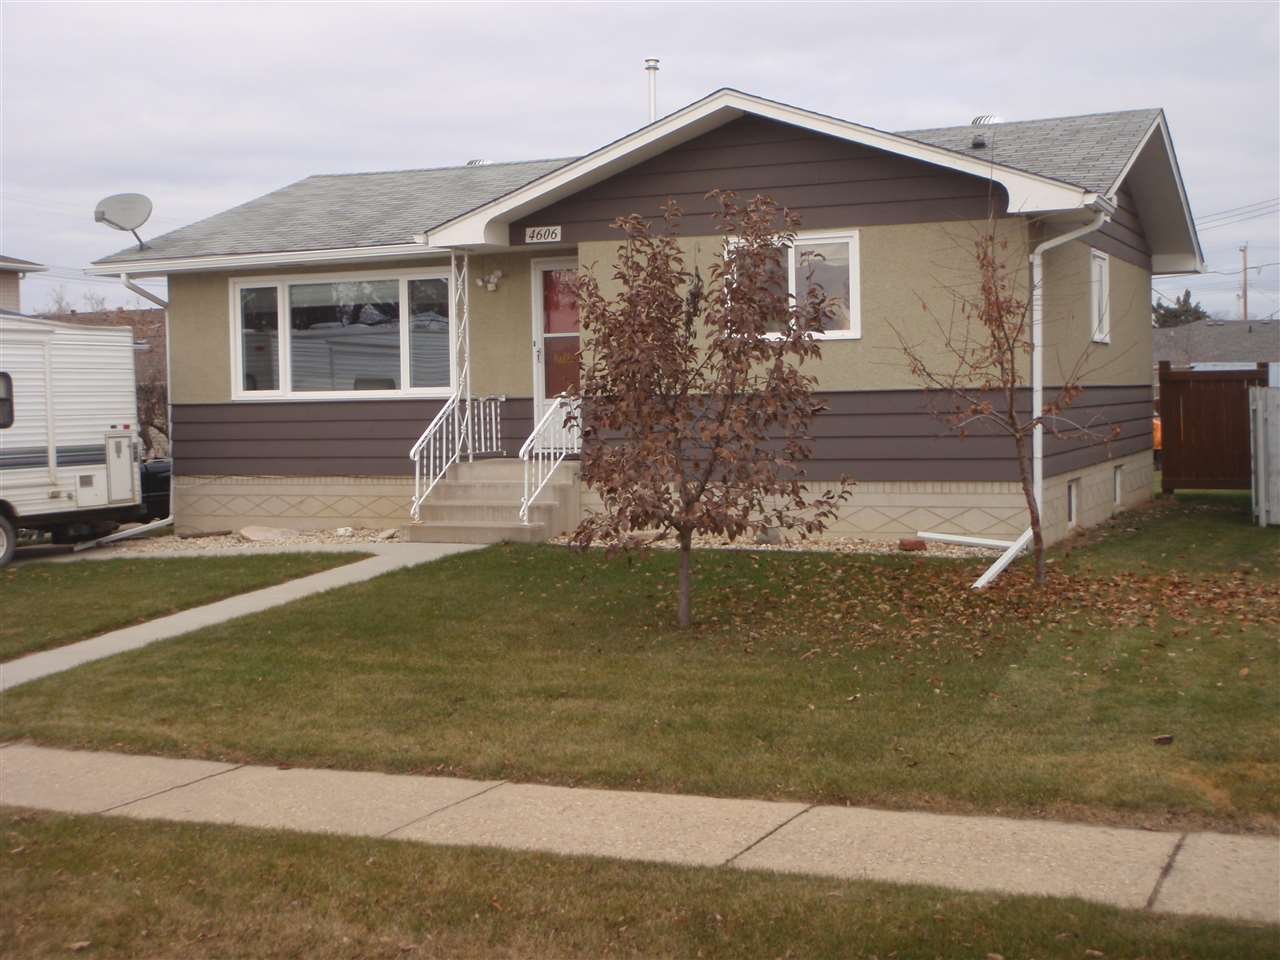 LIKE NEW! Renovated 2+1 Bedroom 955 sq.ft. bungalow on east side of town. Upgrades in past 8 years include: windows, doors, furnace, hot water tank, main floor 4-pc bath, 100 amp breaker box, interior paint (up & down), natural gas fireplace, fence, 10x20 deck, landscaping & firepit. The basement has also been completely developed in 2011 (large rumpus room, 3-pc bath/laundry combo, bedroom and 2 storage rooms). Also new in last 8 years is the 24x25 garage (vinyl siding) with concrete floor and huge concrete pad, plus concrete parking pad in front of house along with concrete sidewalk. Comes with 2 storage sheds and garage workbench/cabinets/shelving.